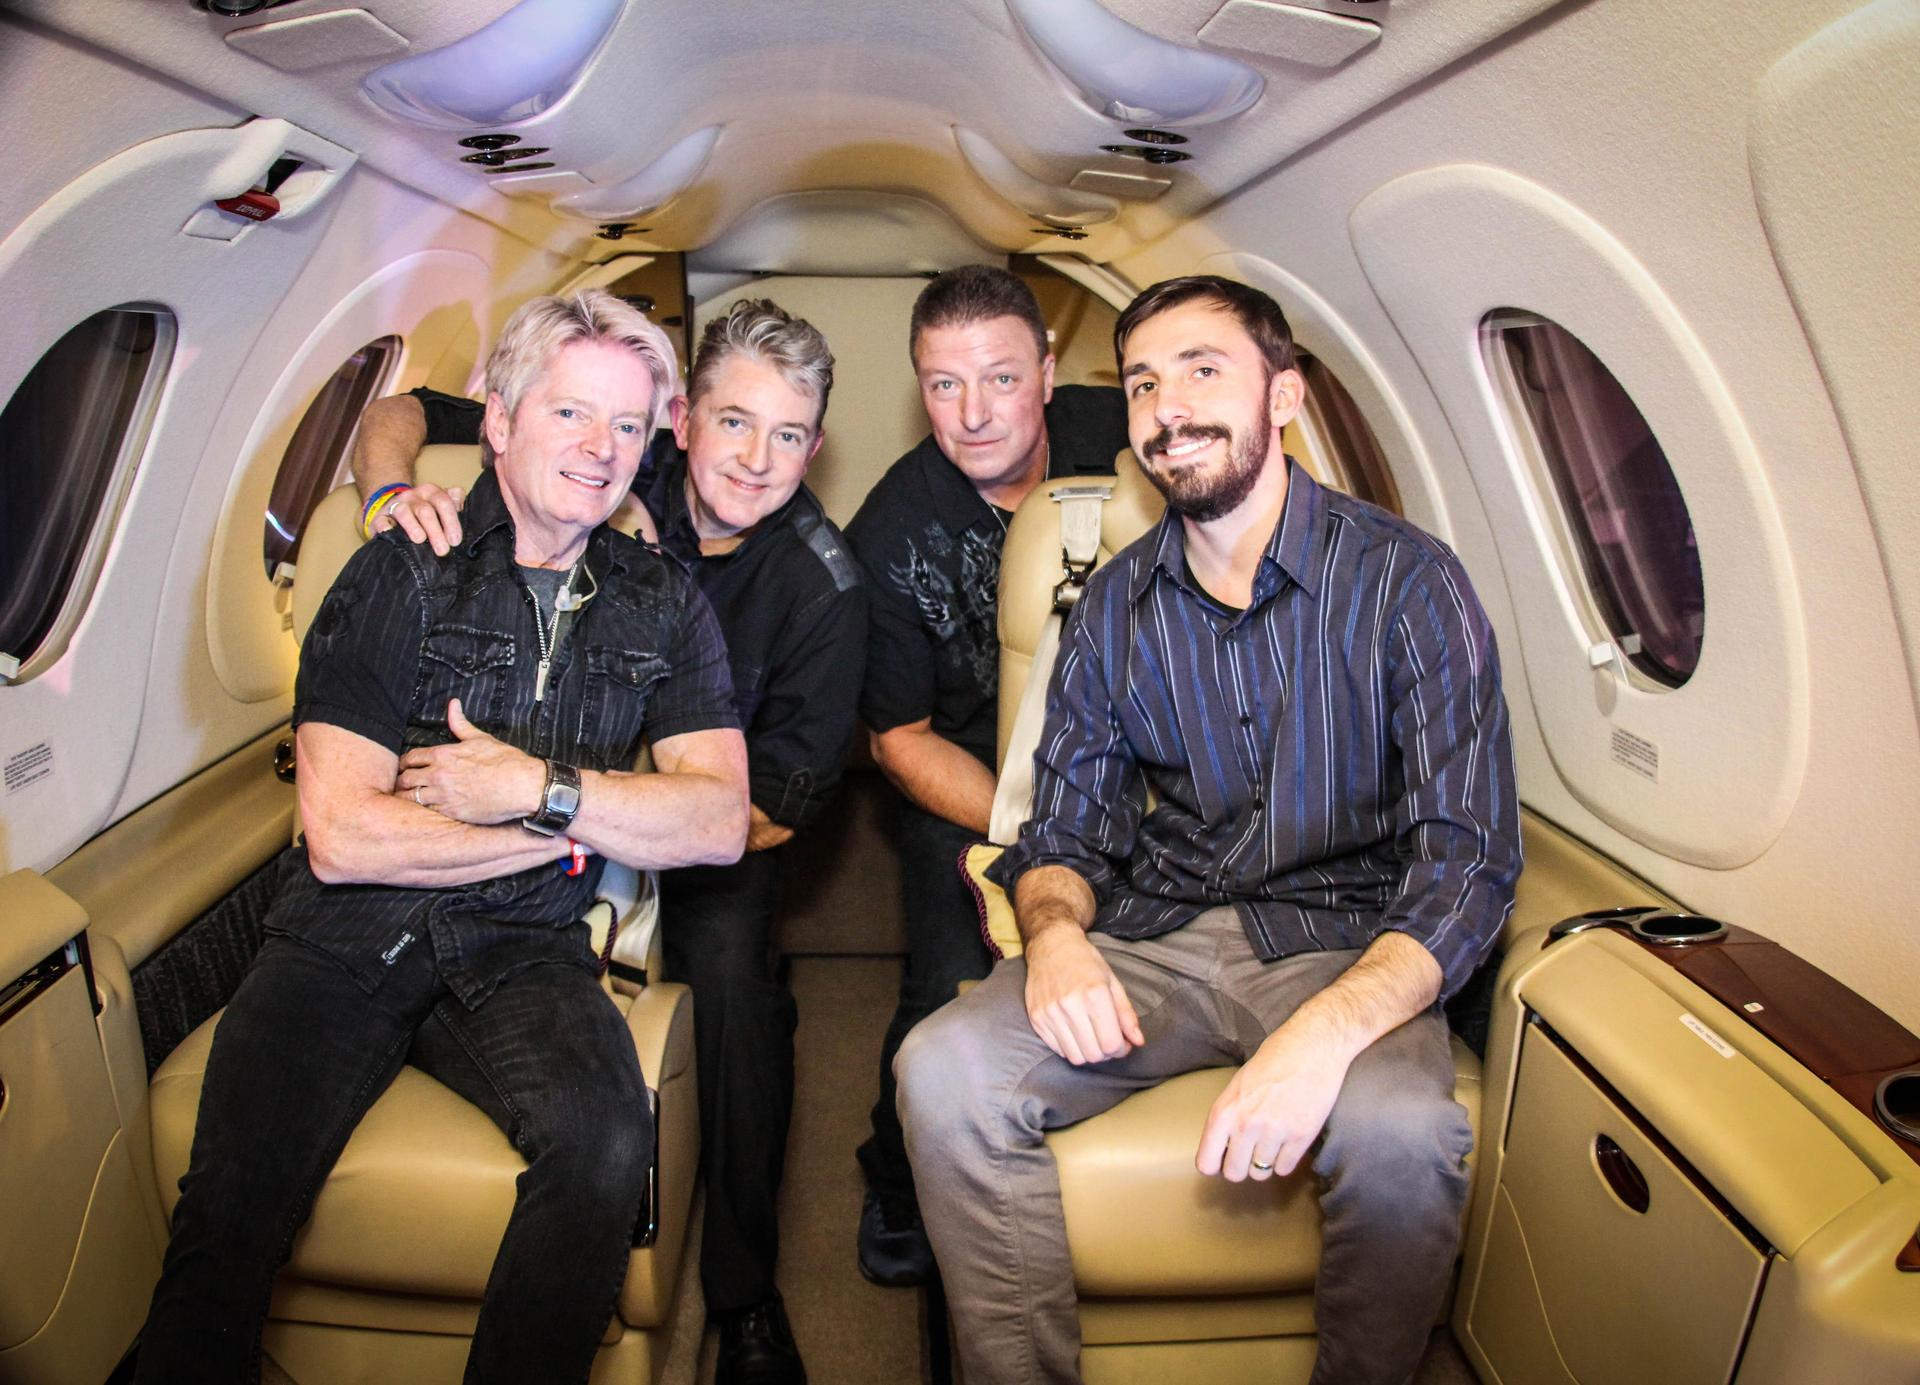 CTS Band Members inside Jet.